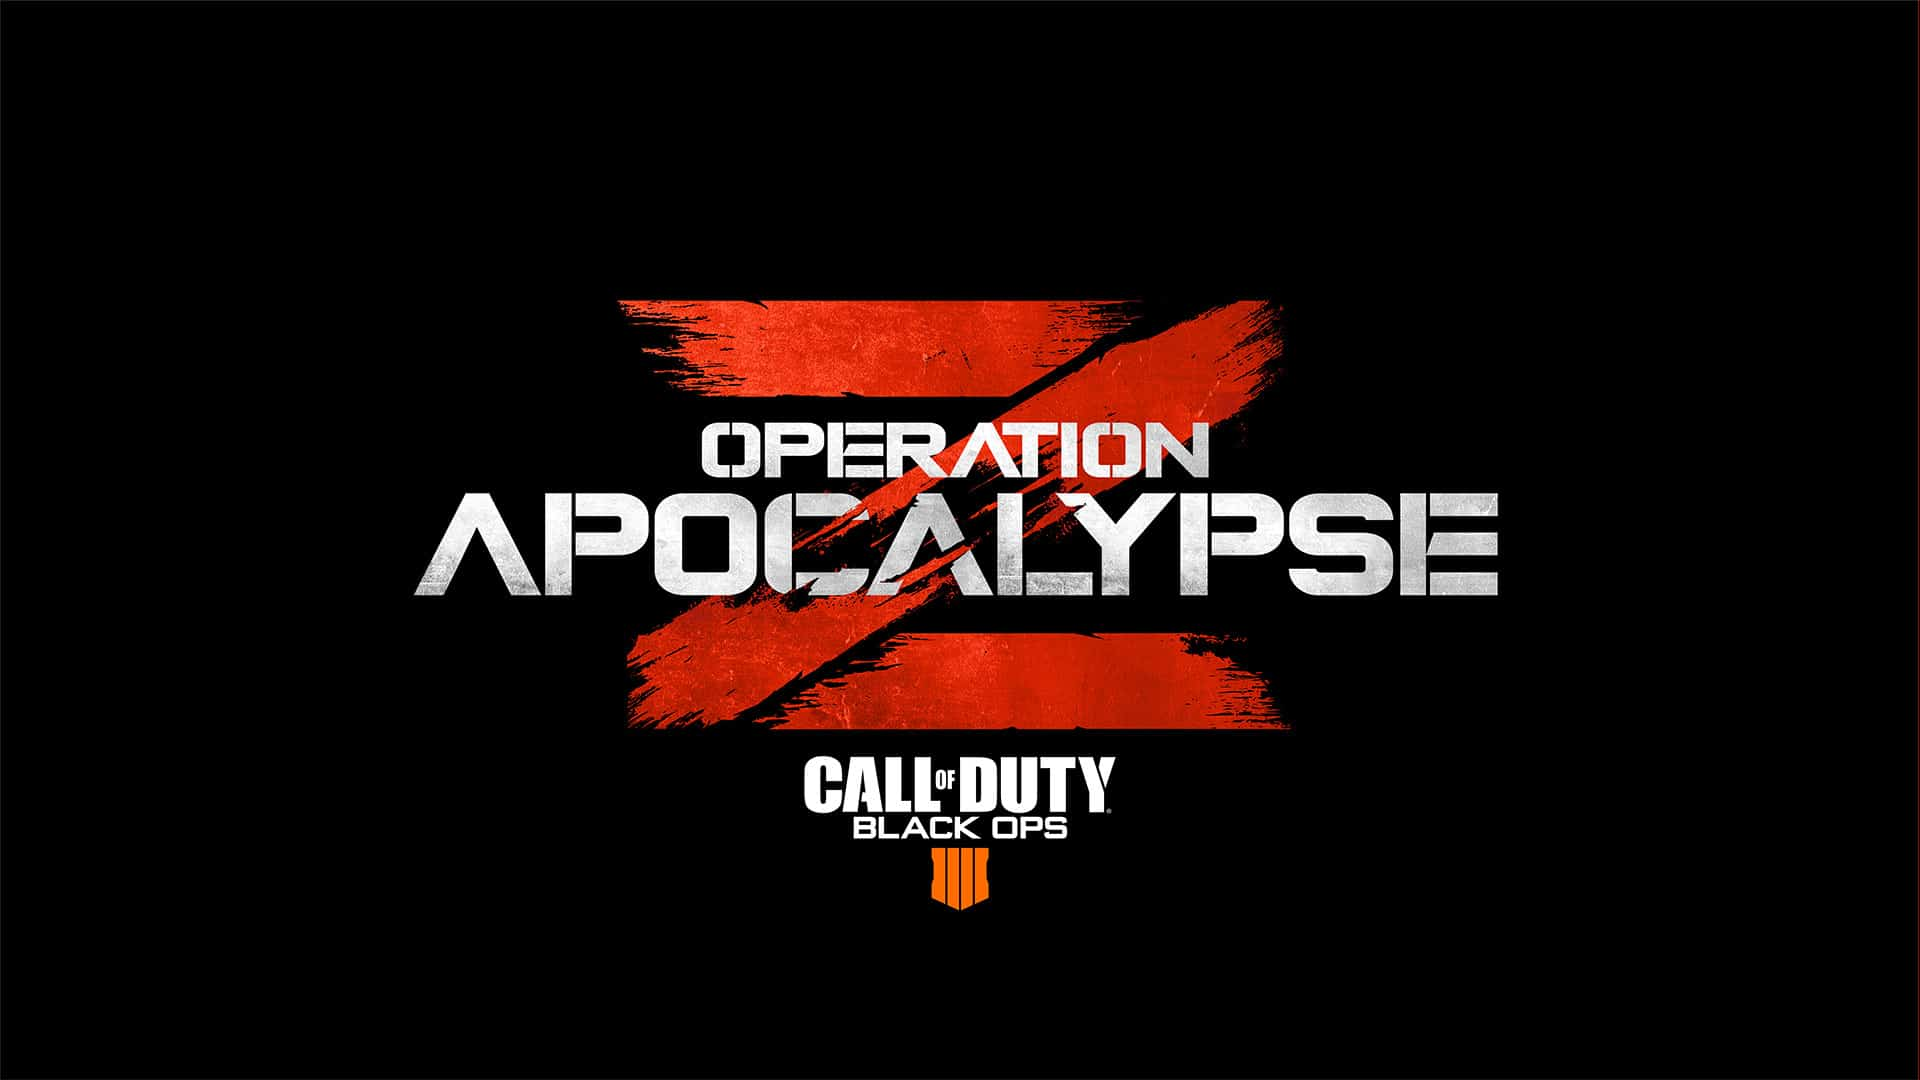 New Season of Call of Duty: Black Ops 4 Starts Now With Operation Apocalypse Z